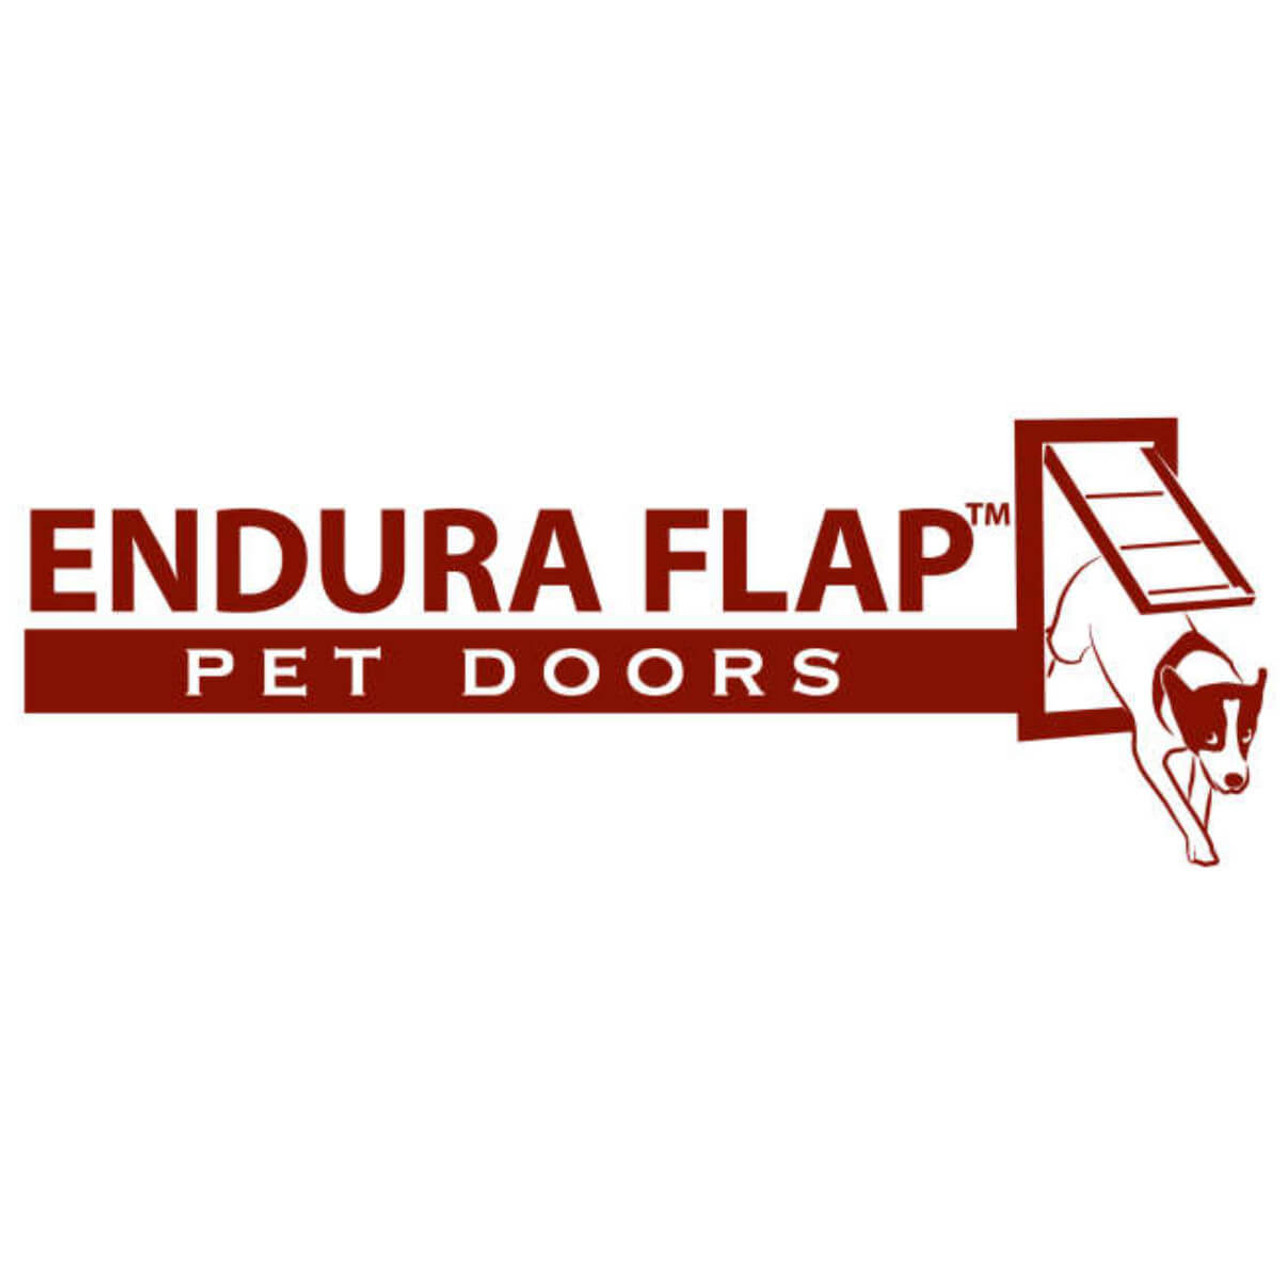 Thermo Panel 3e Endura Flap pet doors are extremely weather tight and durable and feature a 10 year warranty